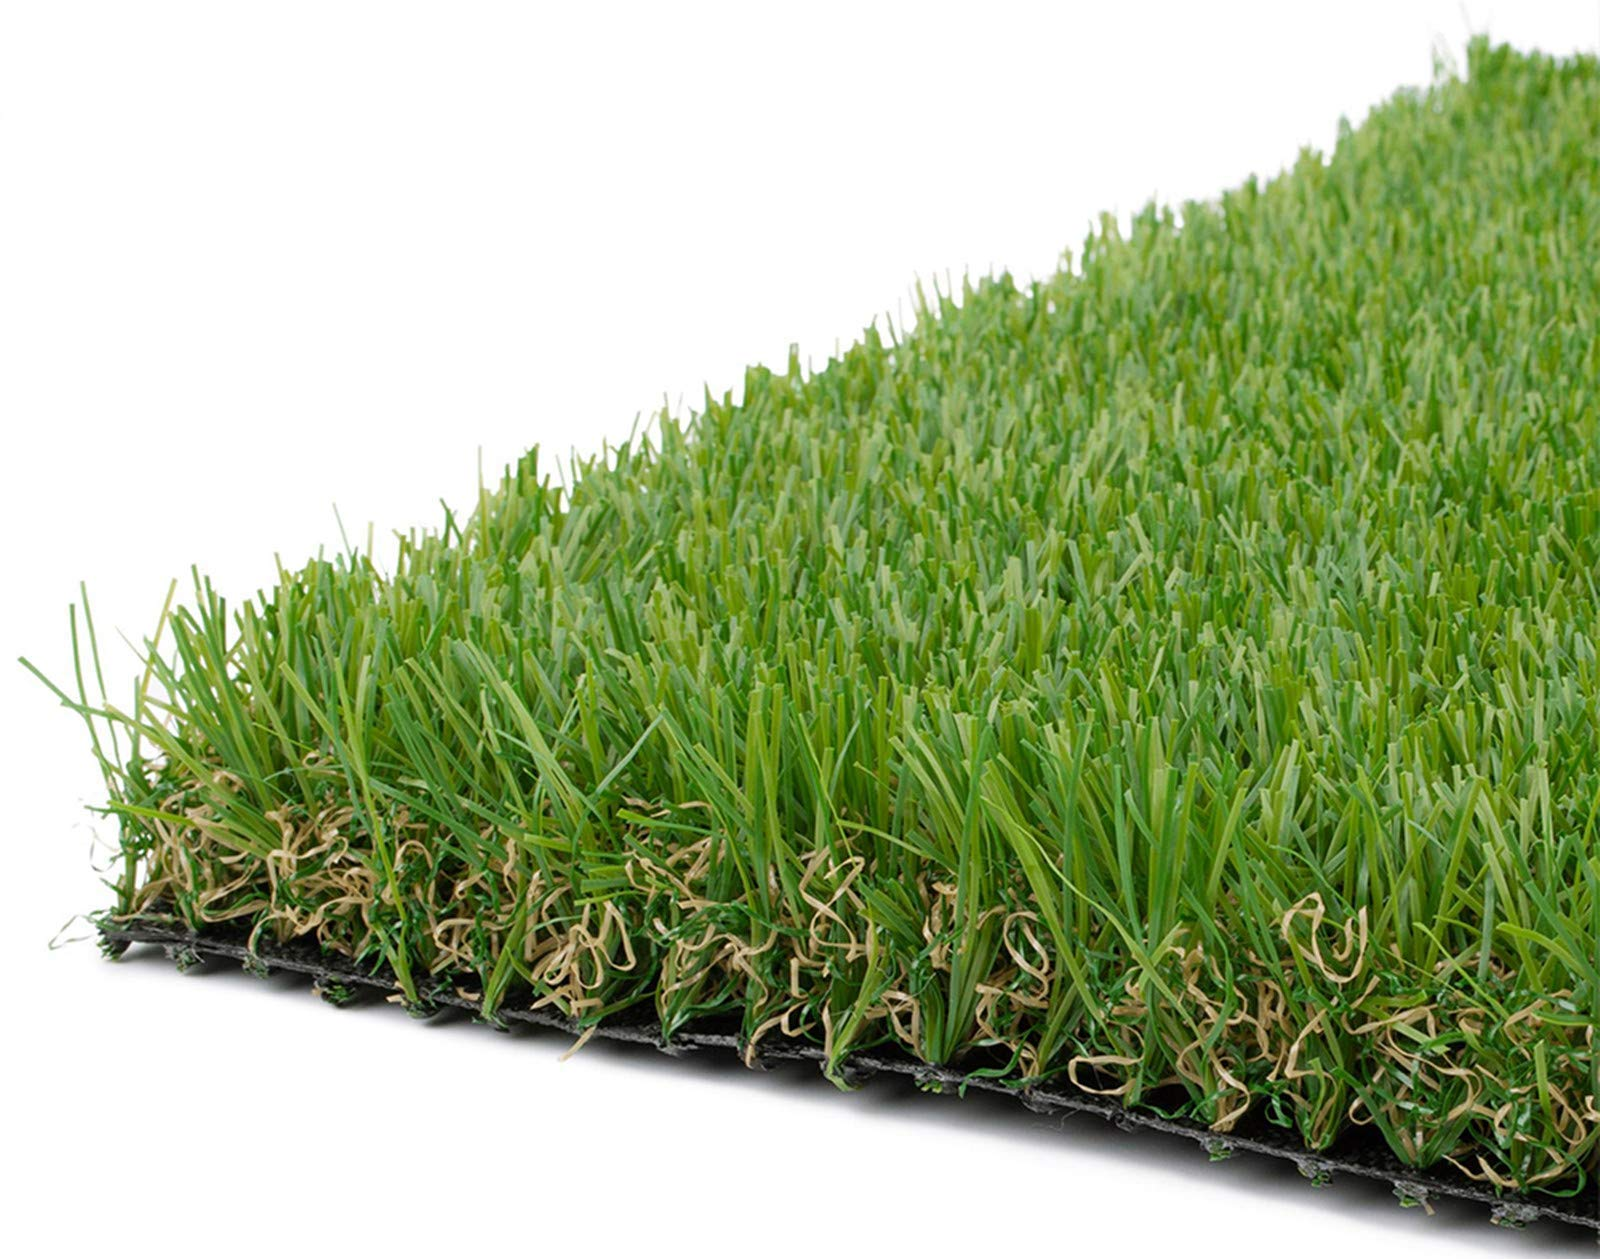 Artificial Grass comparing the pros and cons